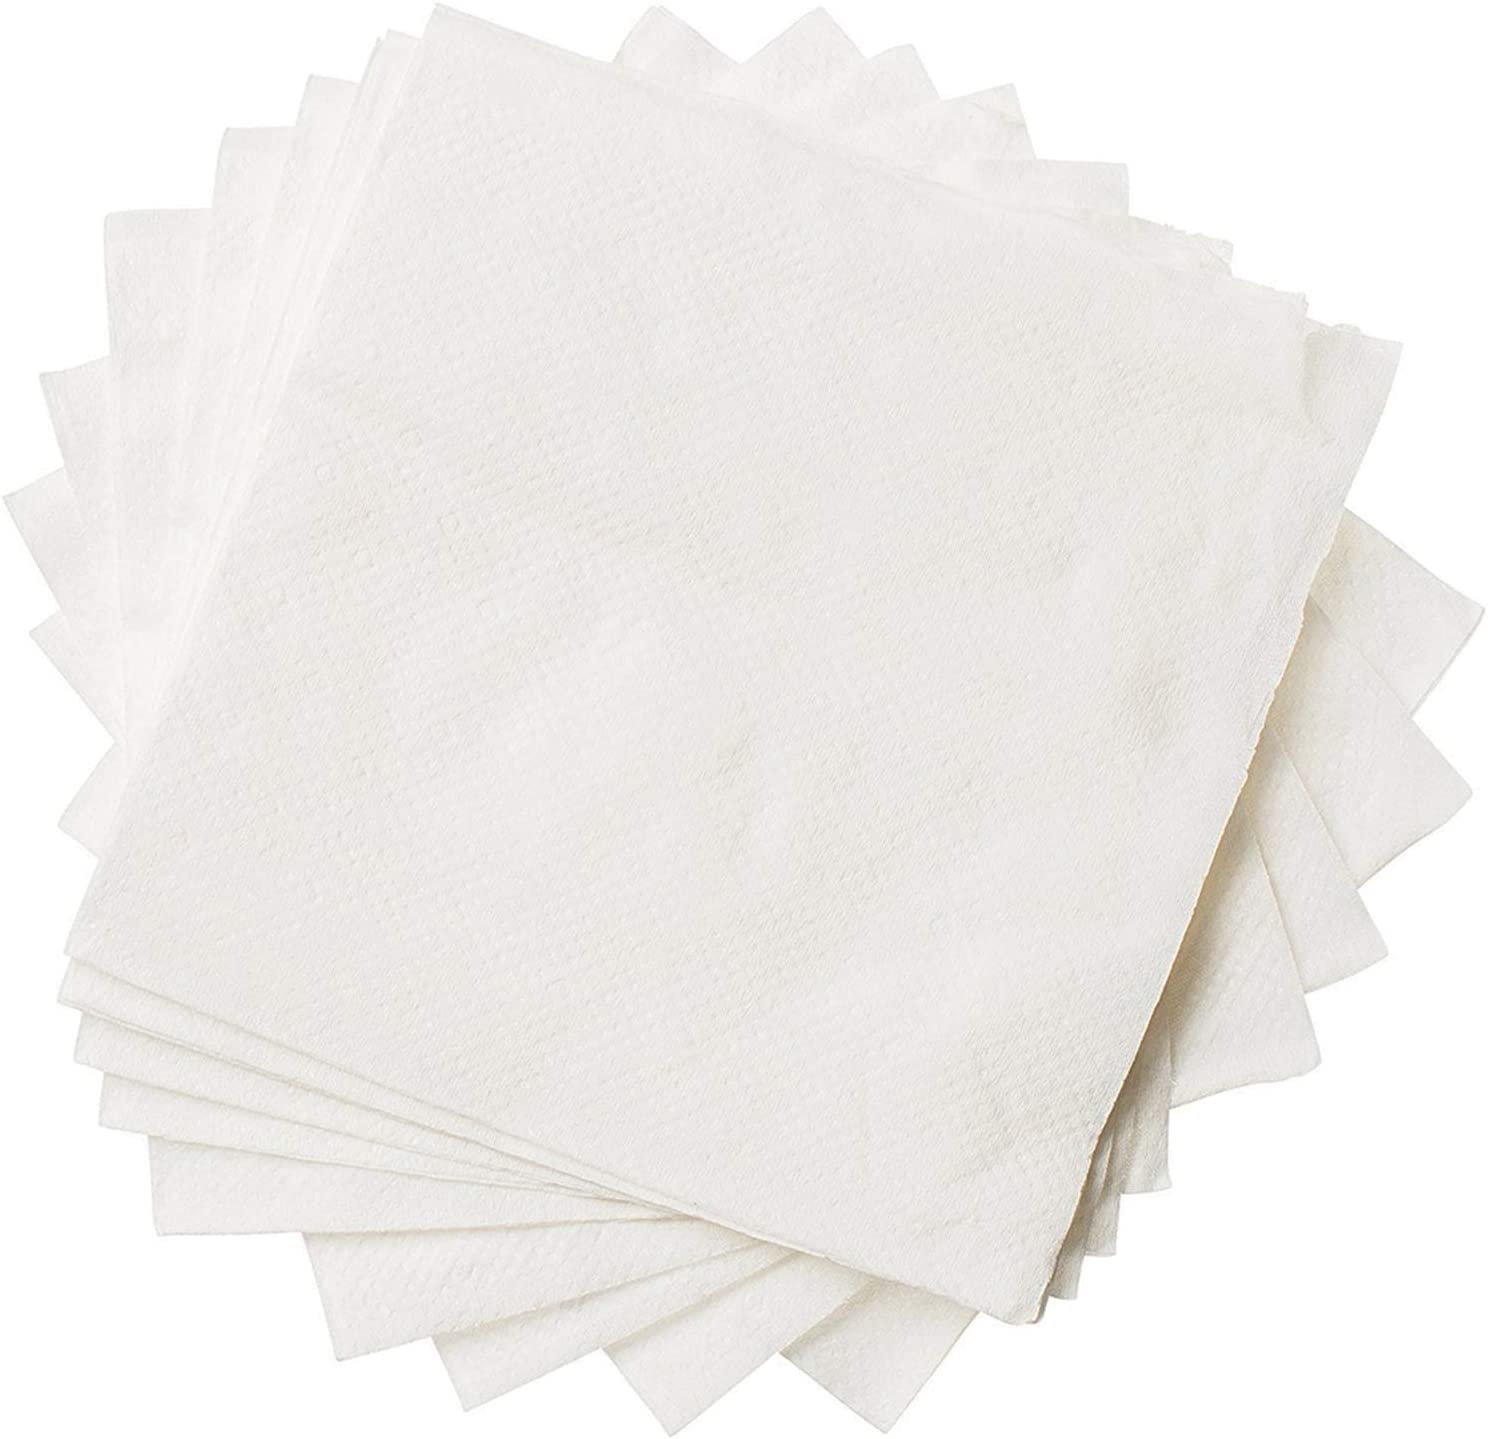 [500 Pack], White Beverage Napkins 1-Ply Bulk Cocktail Napkins, Restaurant Bar Paper Napkins…